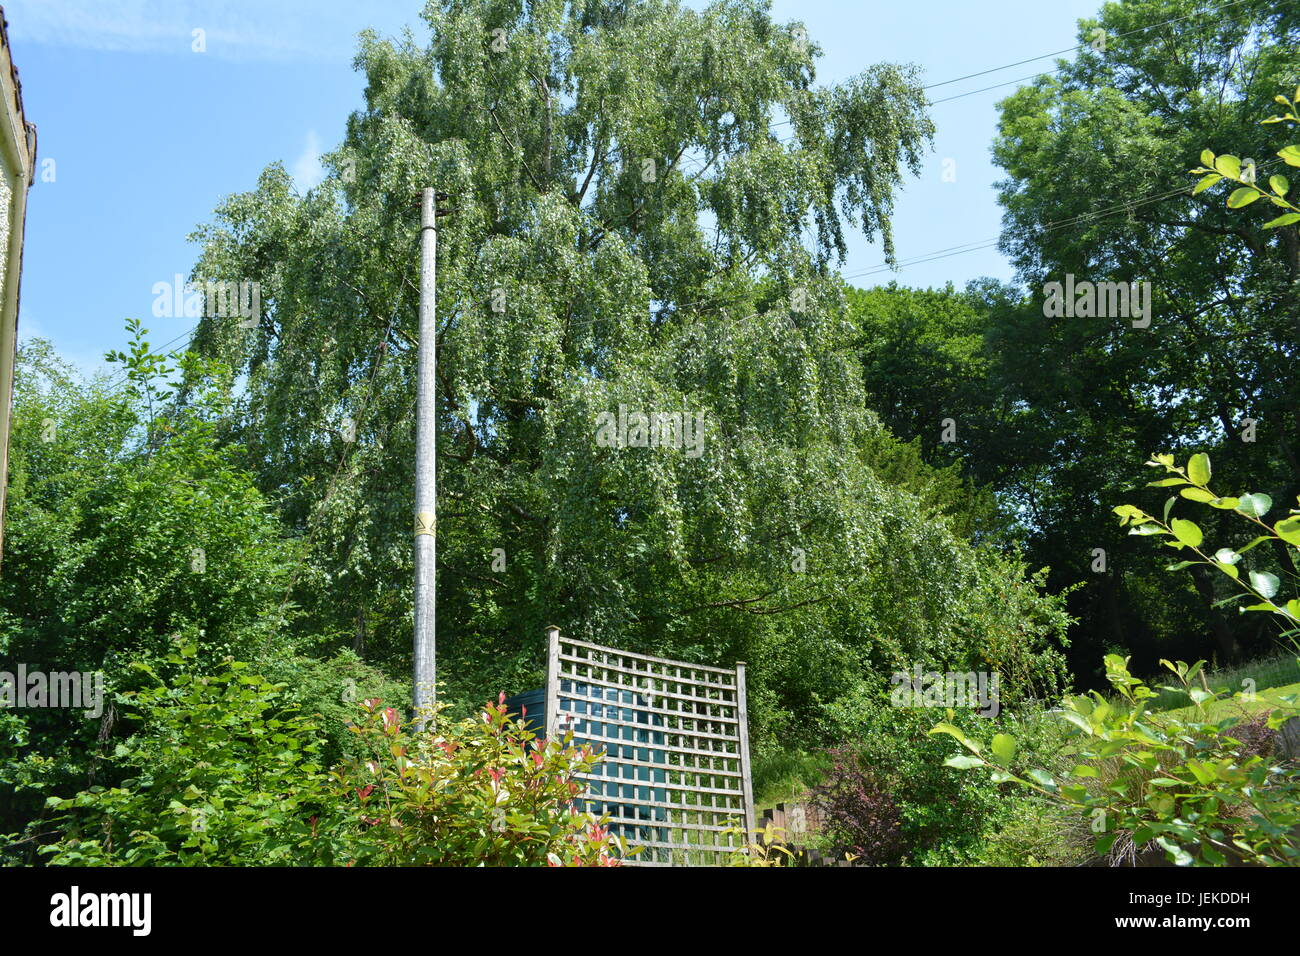 large silver birch tree overhanging power electricity telephone lines and wires with wooden timber post in garden - Stock Image